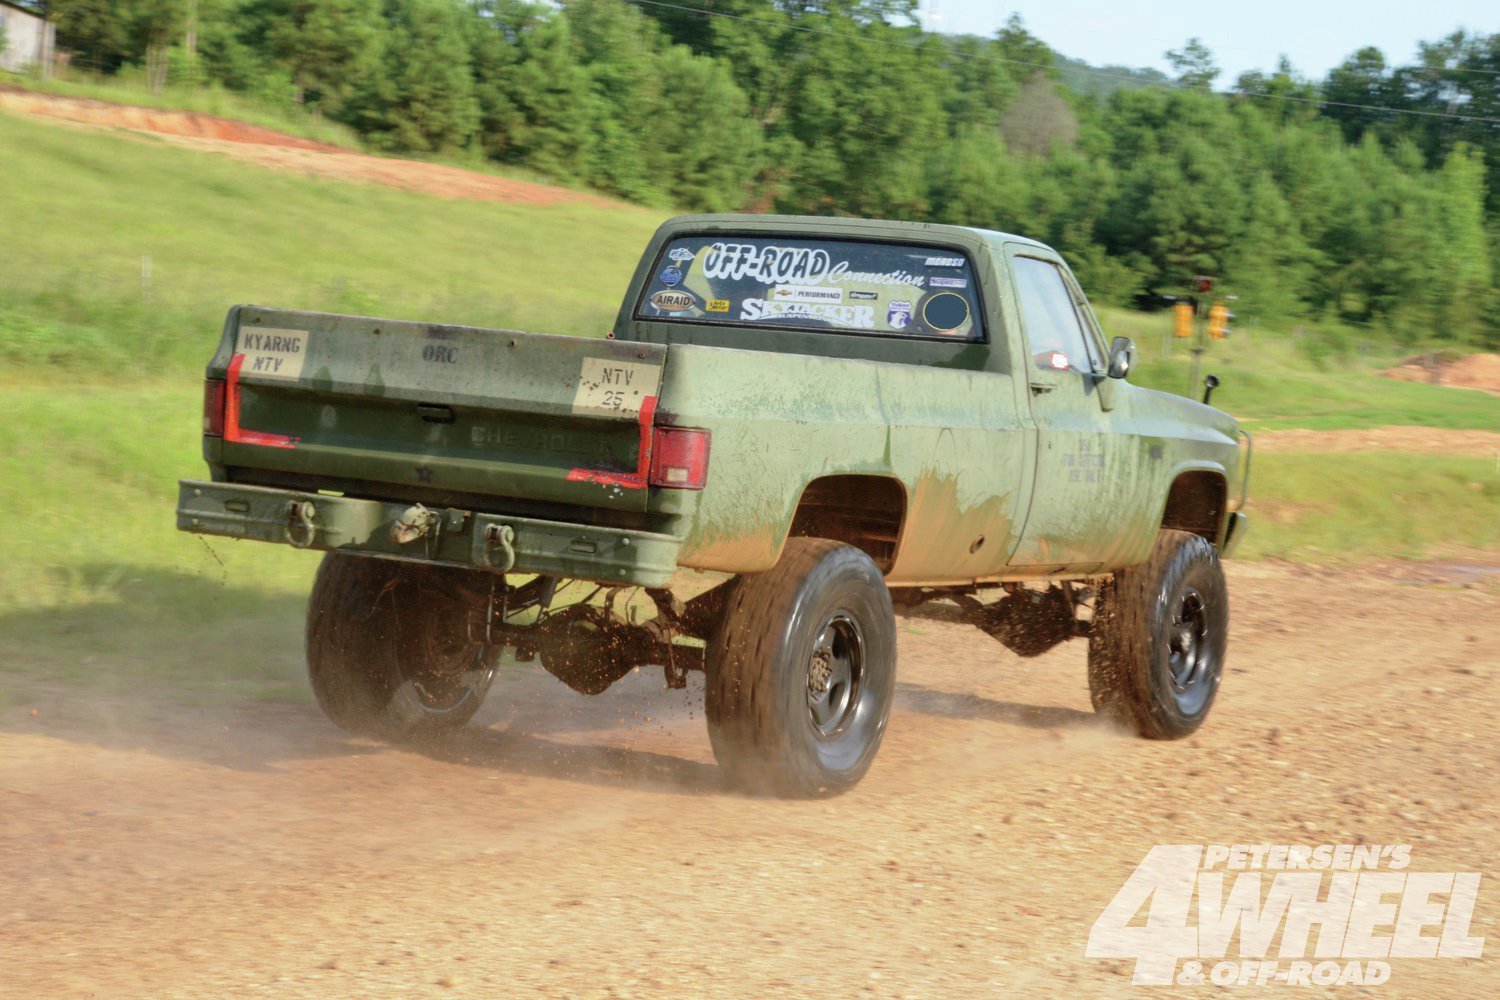 1986 Chevy K30 - Alabama Army Truck: Part 1 - 4-Wheel & Off-Road